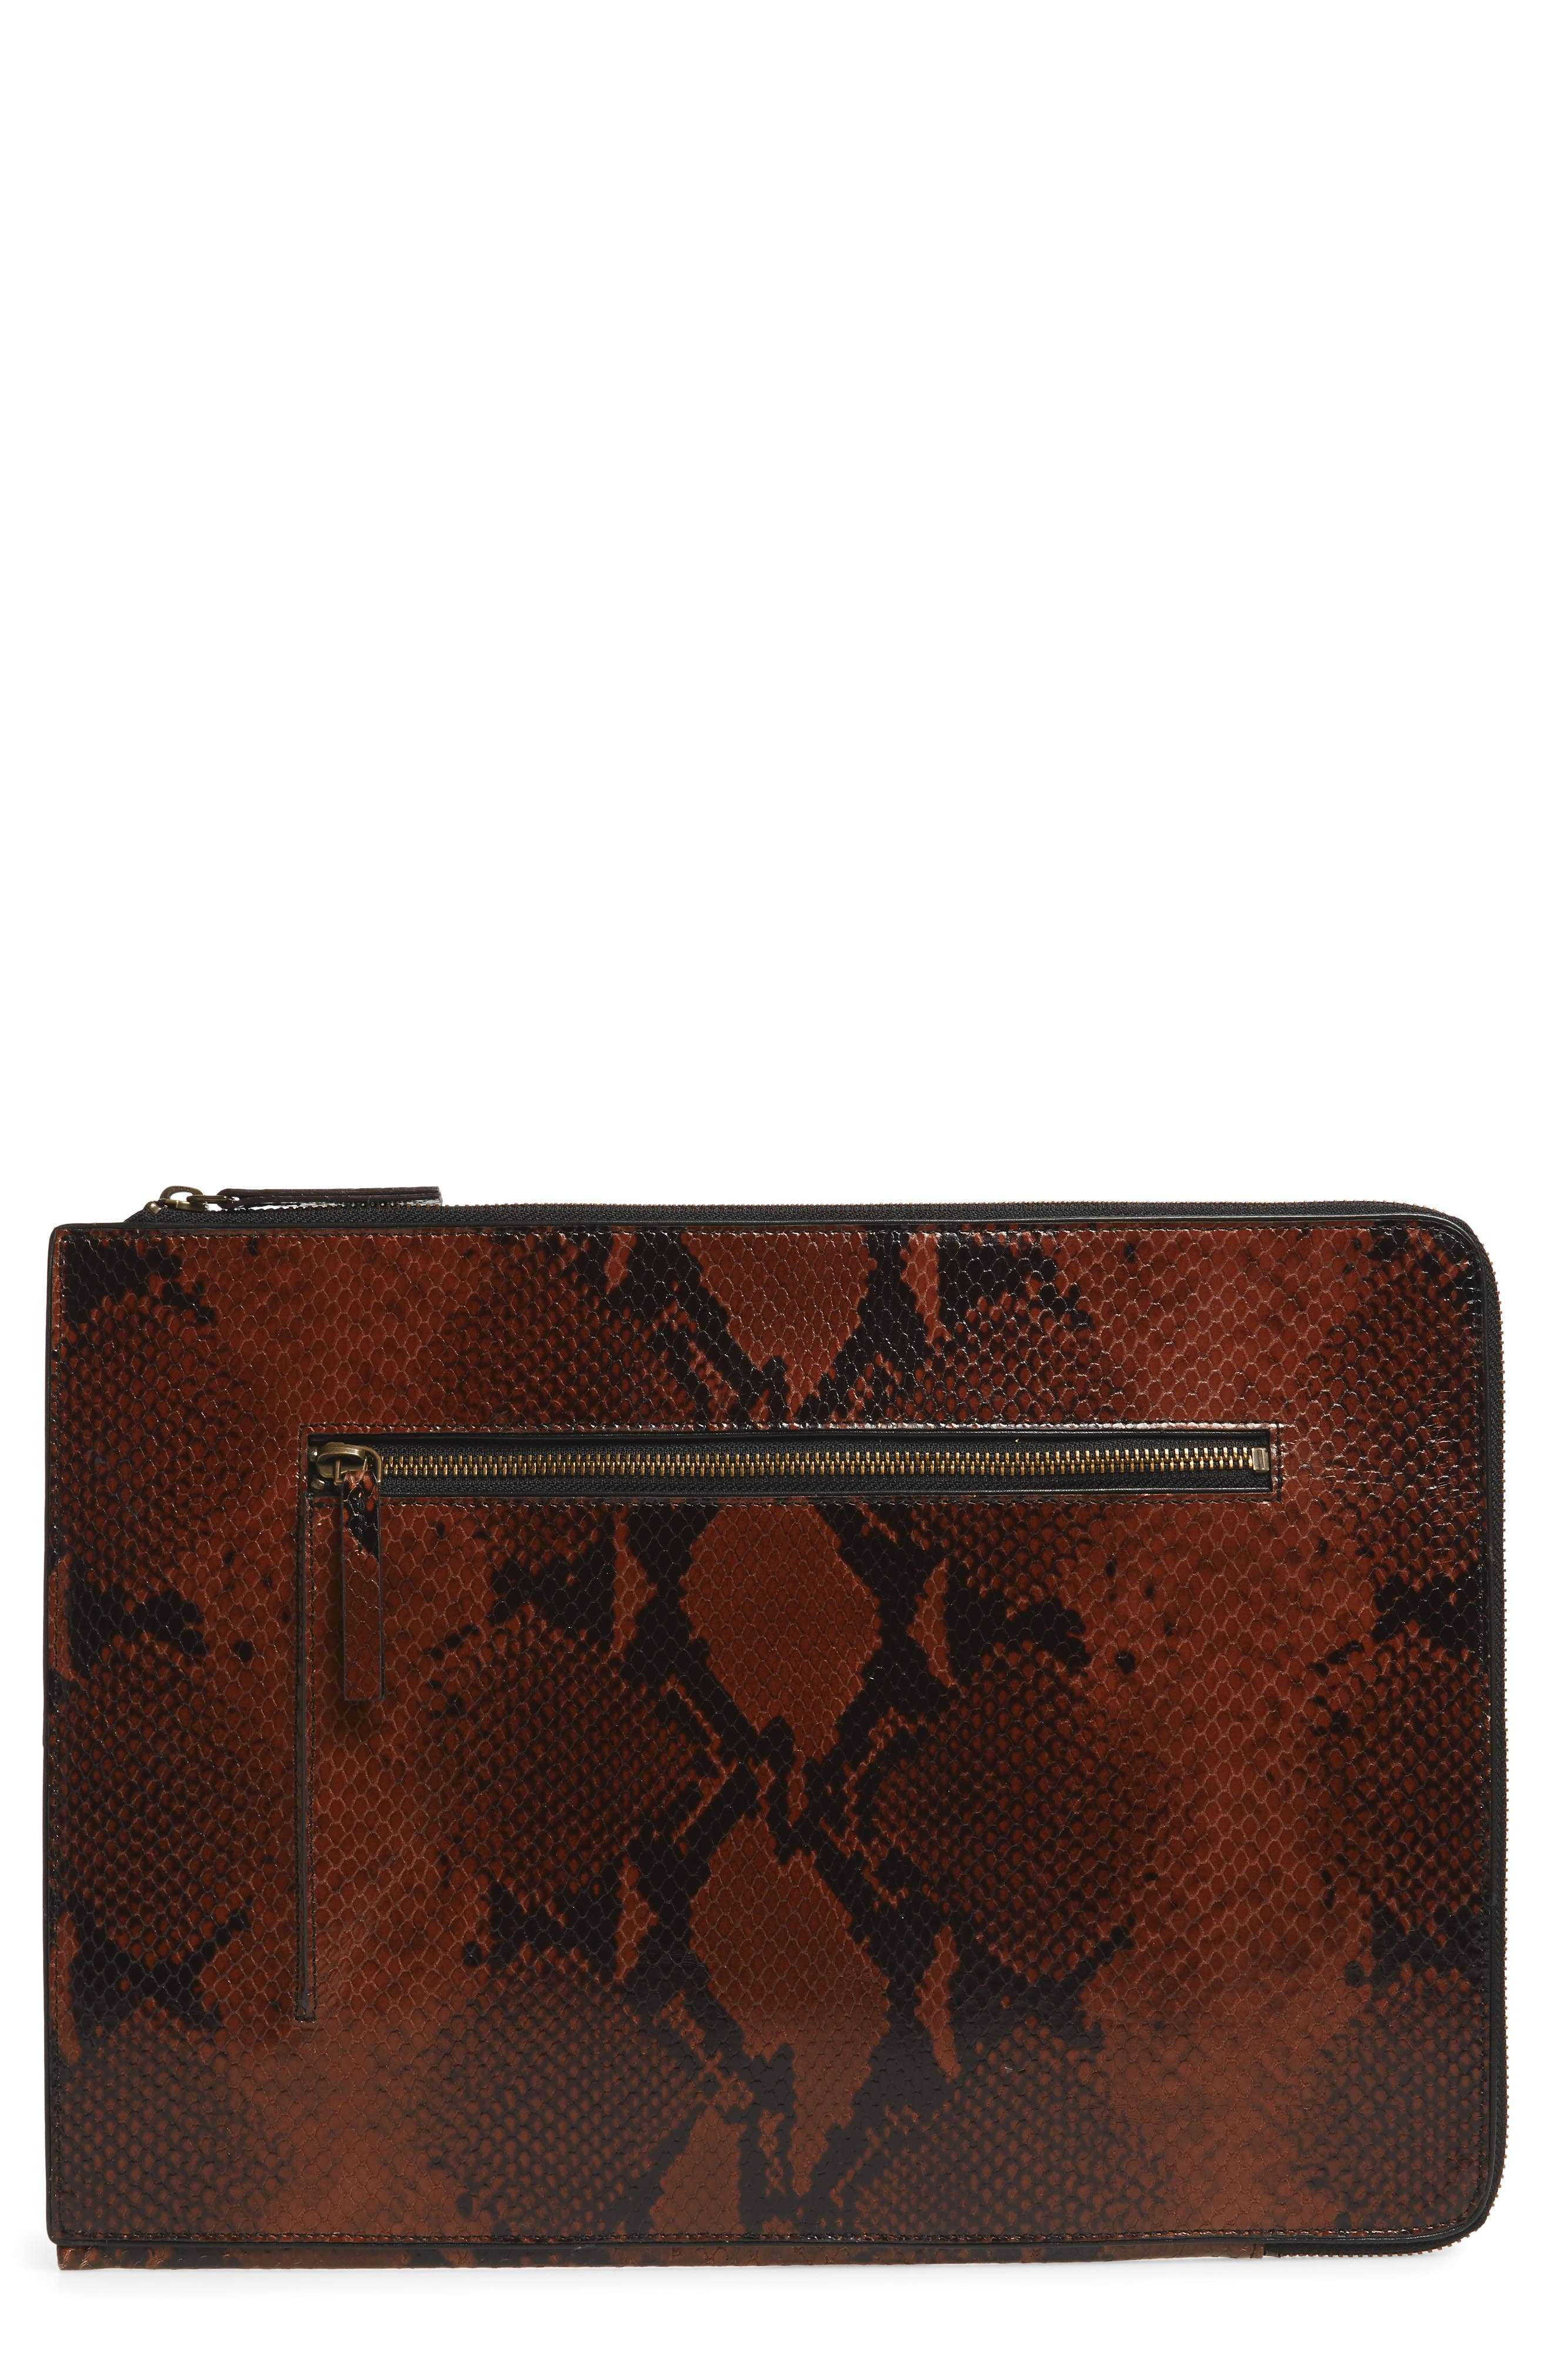 Leather Laptop Sleeve,                             Main thumbnail 1, color,                             200